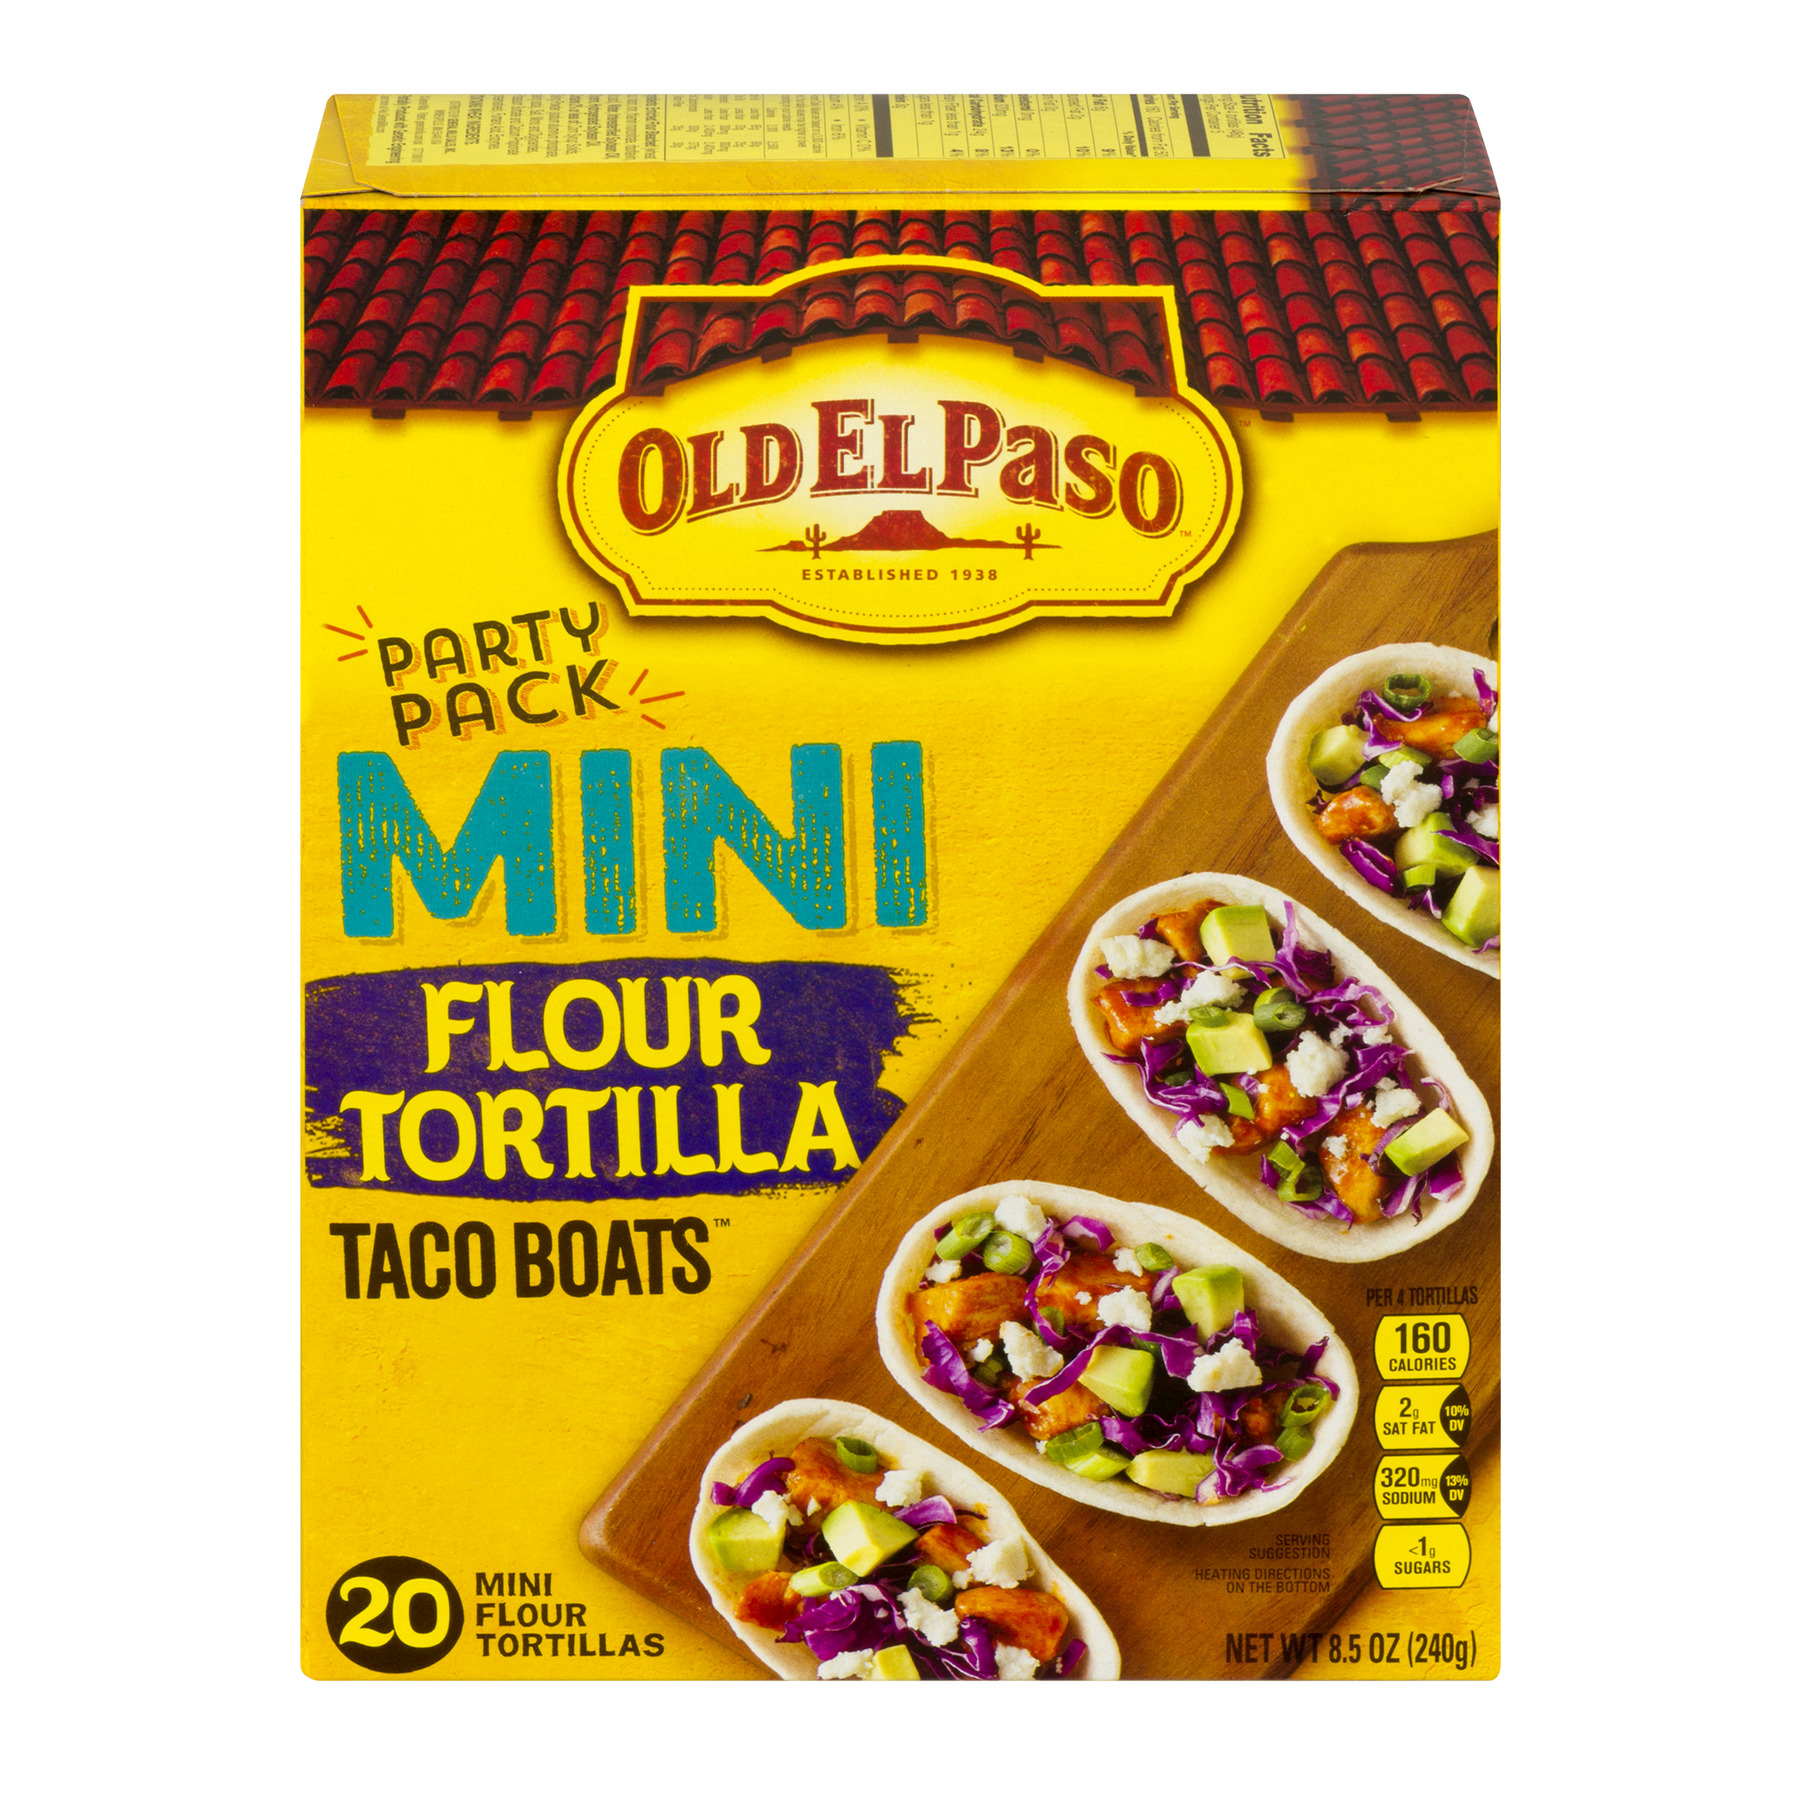 Old El Paso™ Taco Boats Mini Flour Tortillas 20 ct Pack